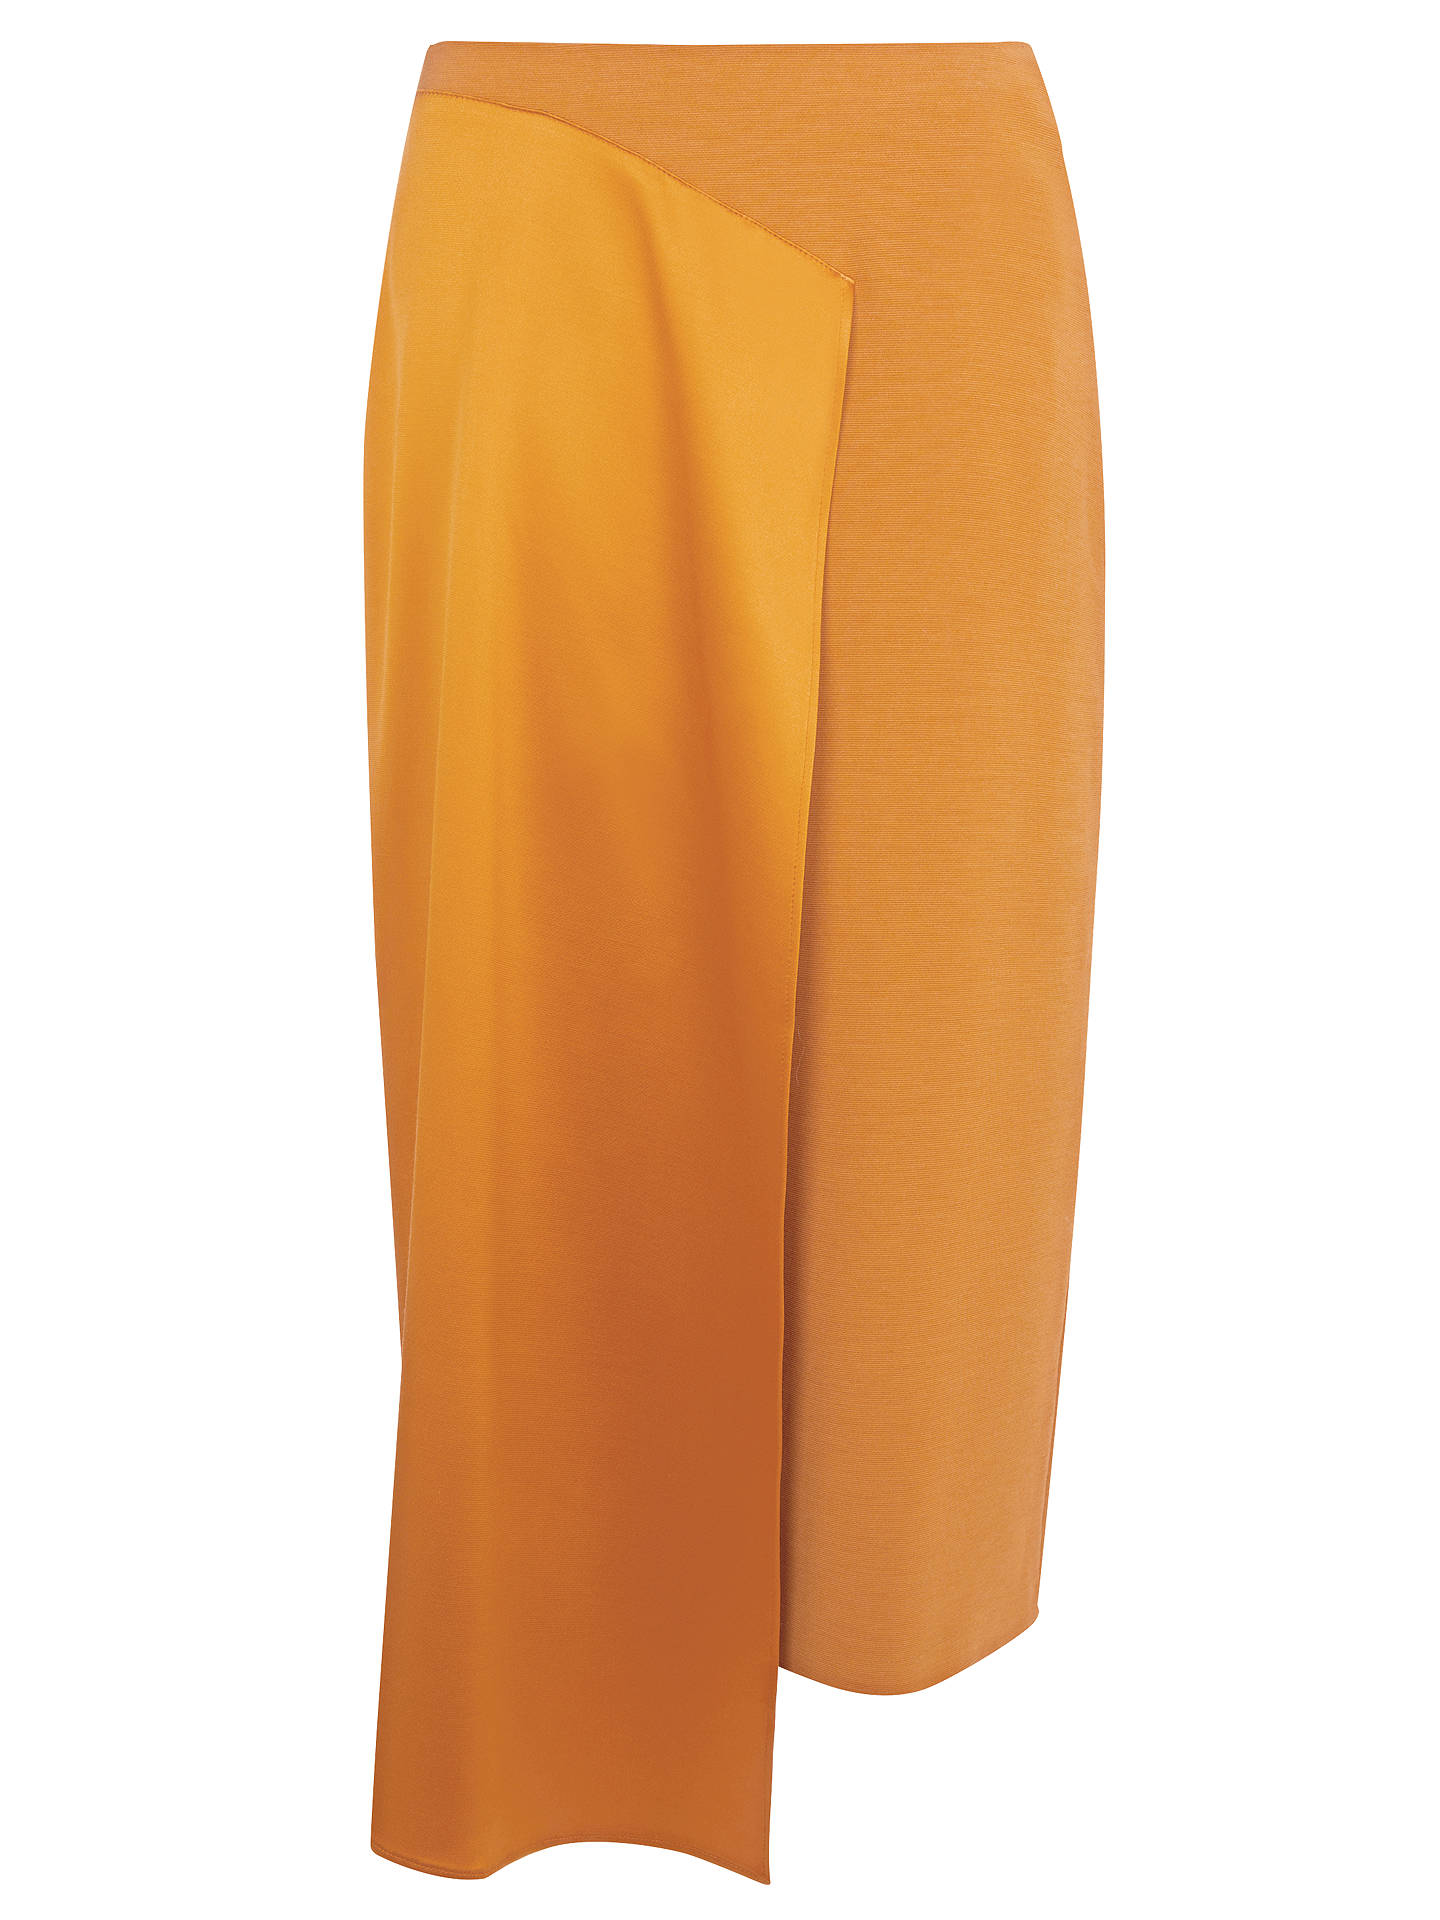 BuyModern Rarity Double Layer Skirt, Burnt Caramel, 8 Online at johnlewis.com